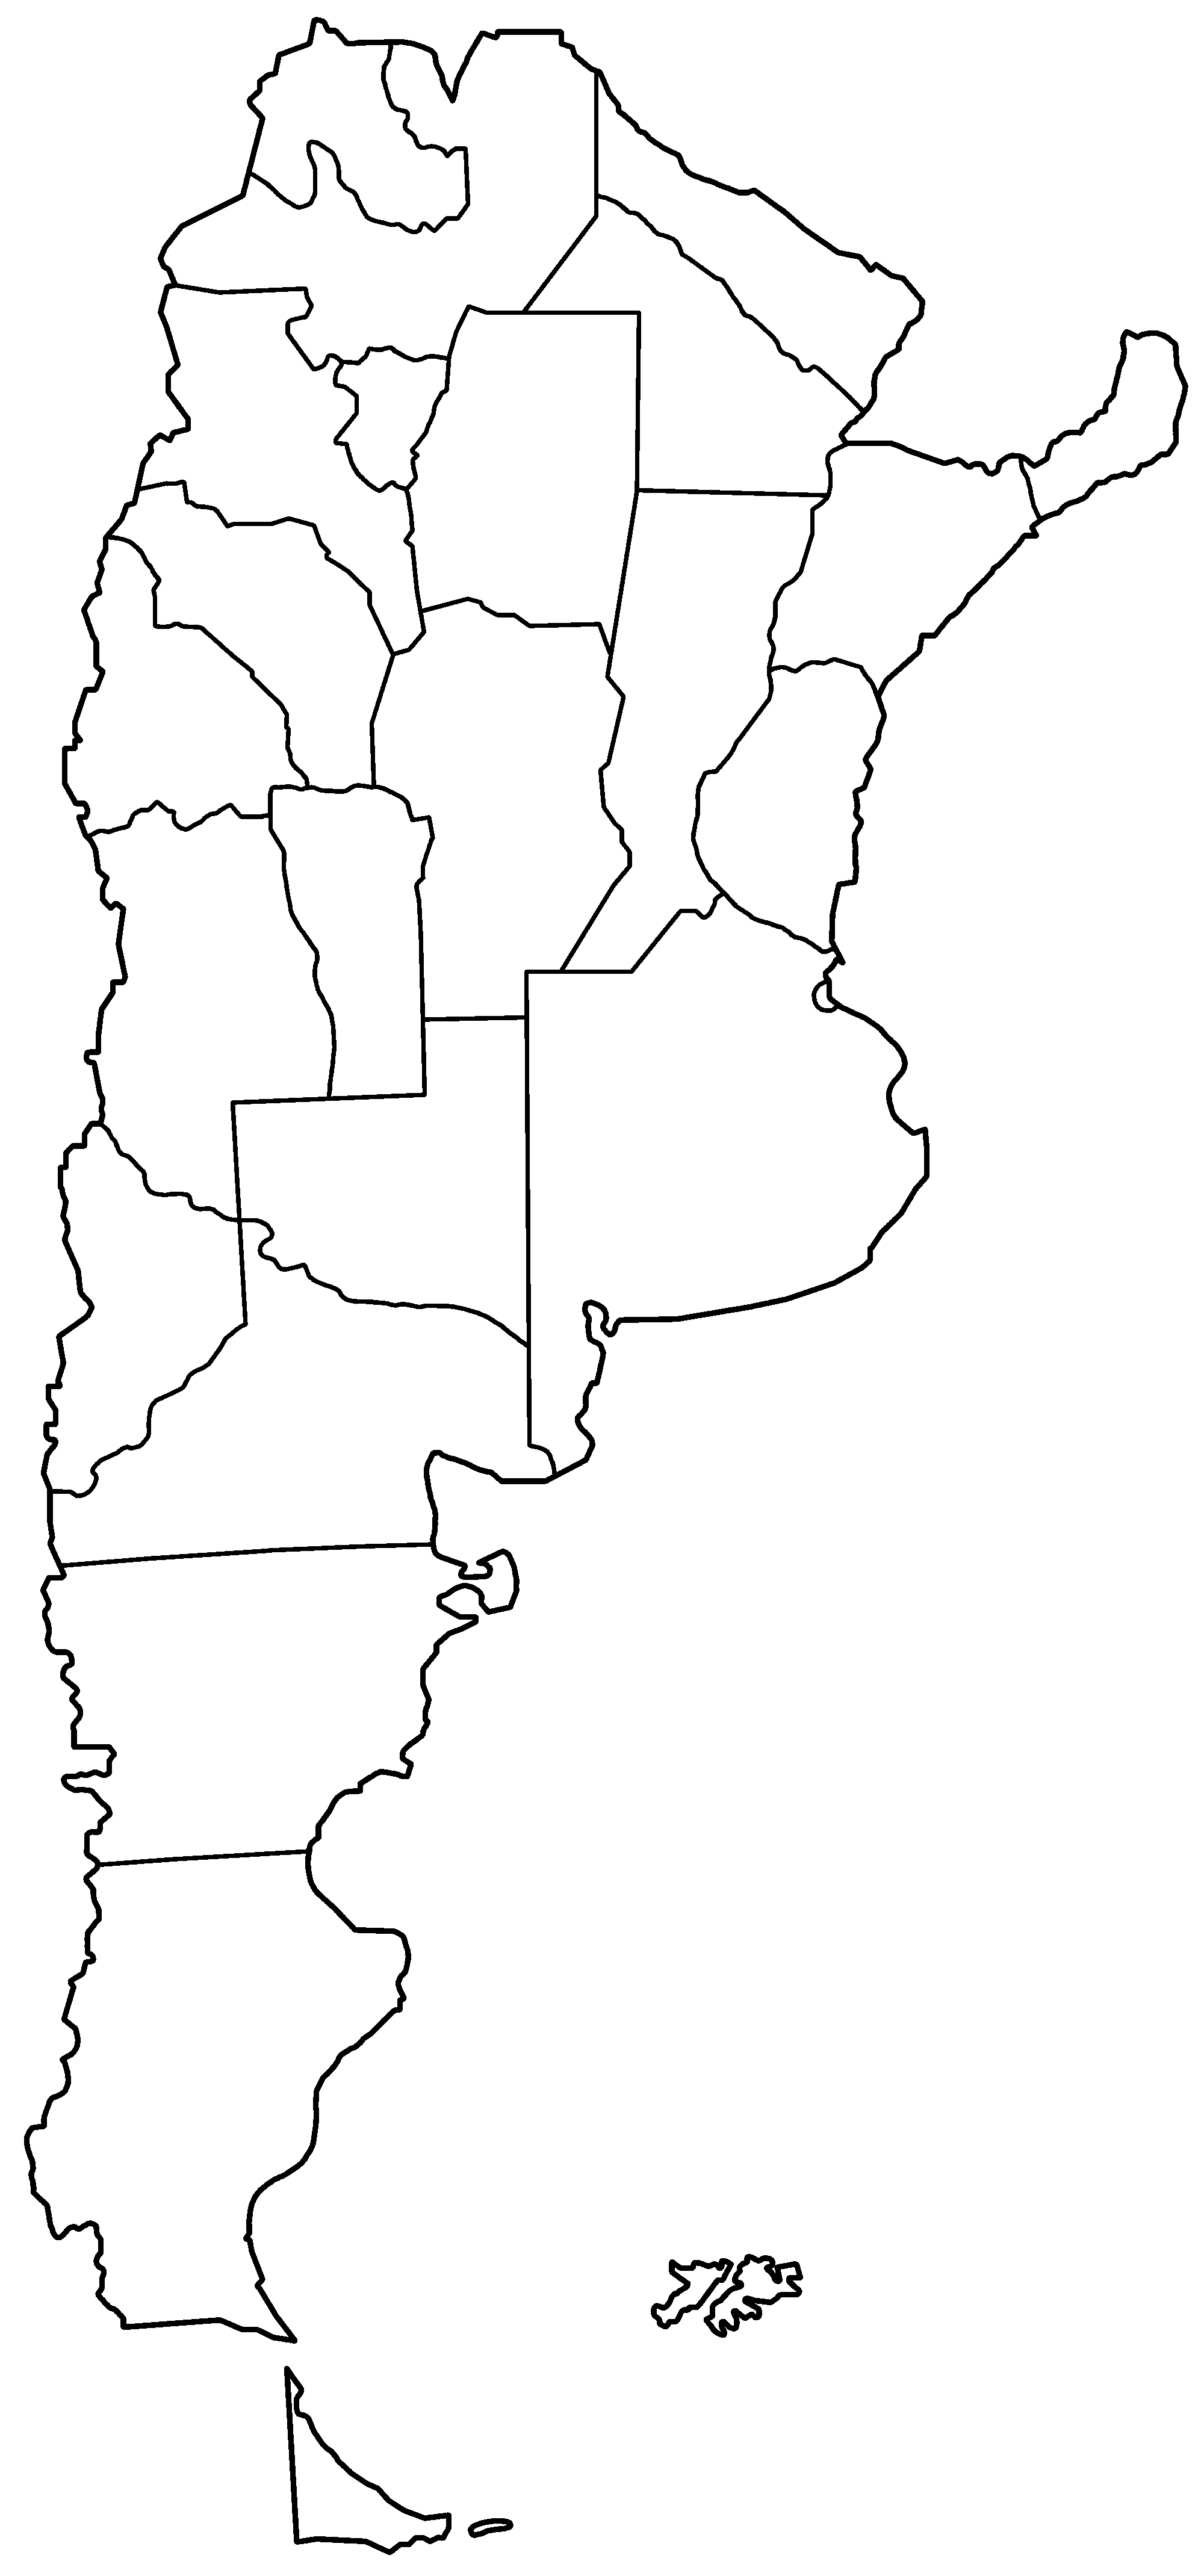 FileArgentina Provinces Blankpng Wikimedia Commons - Argentina map vector free